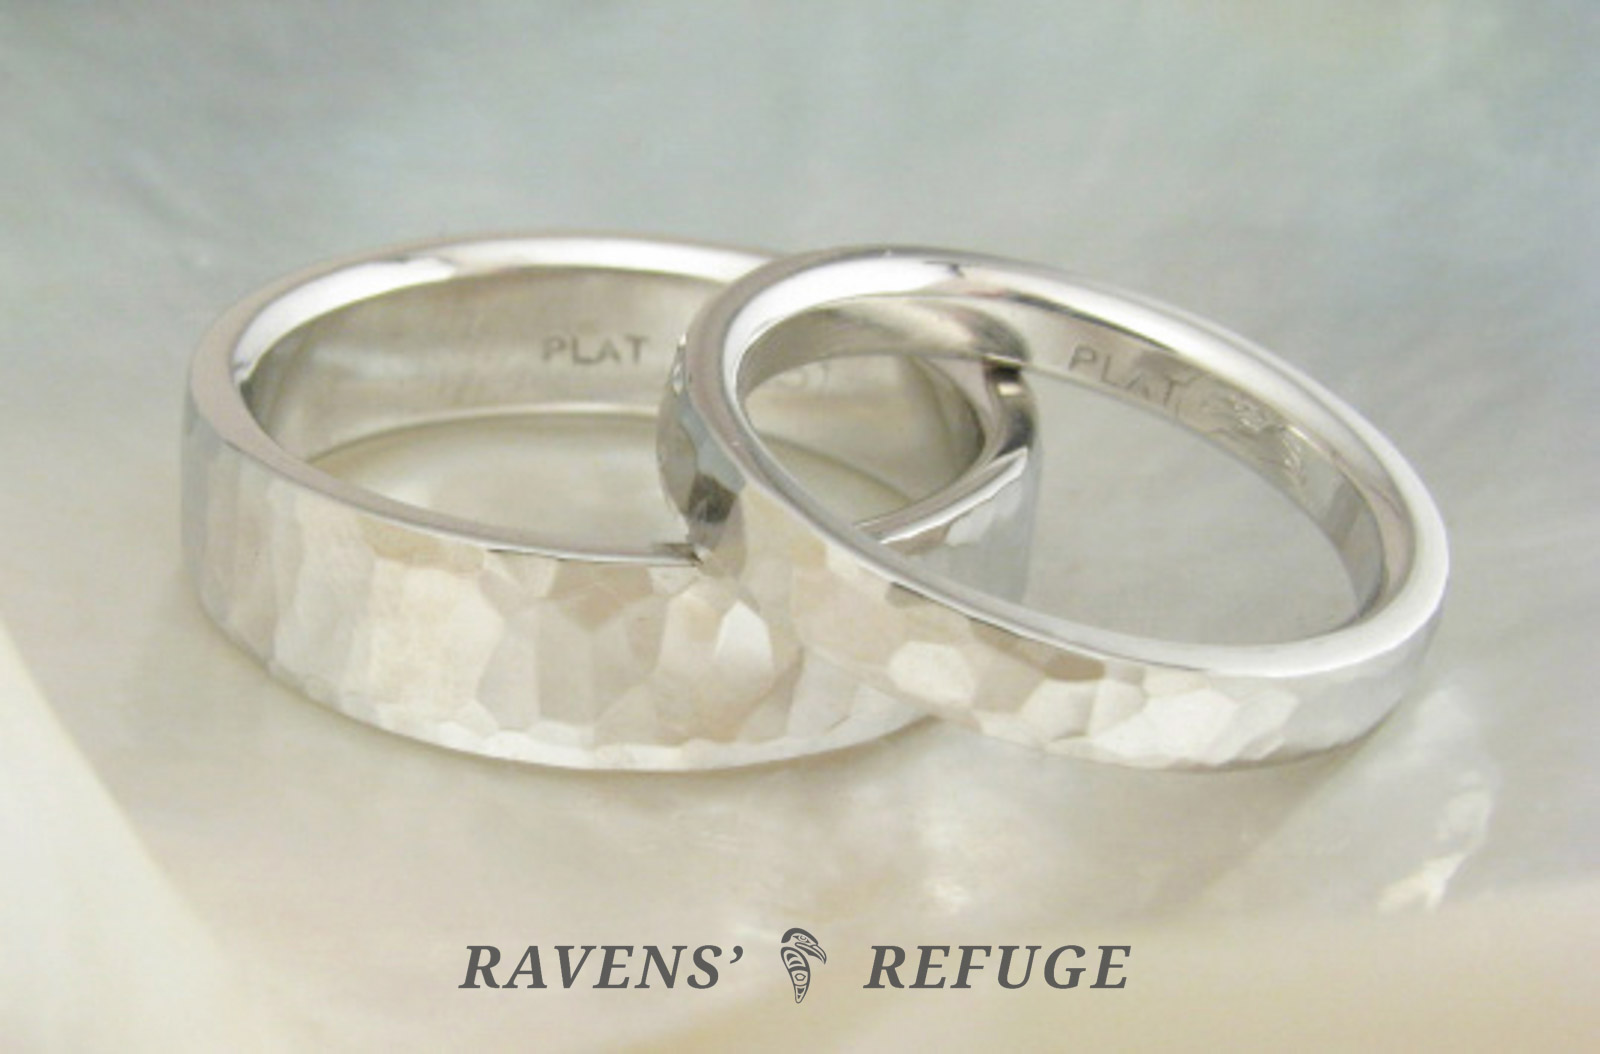 unique hammered wedding bands matching platinum rings Ravens Refuge